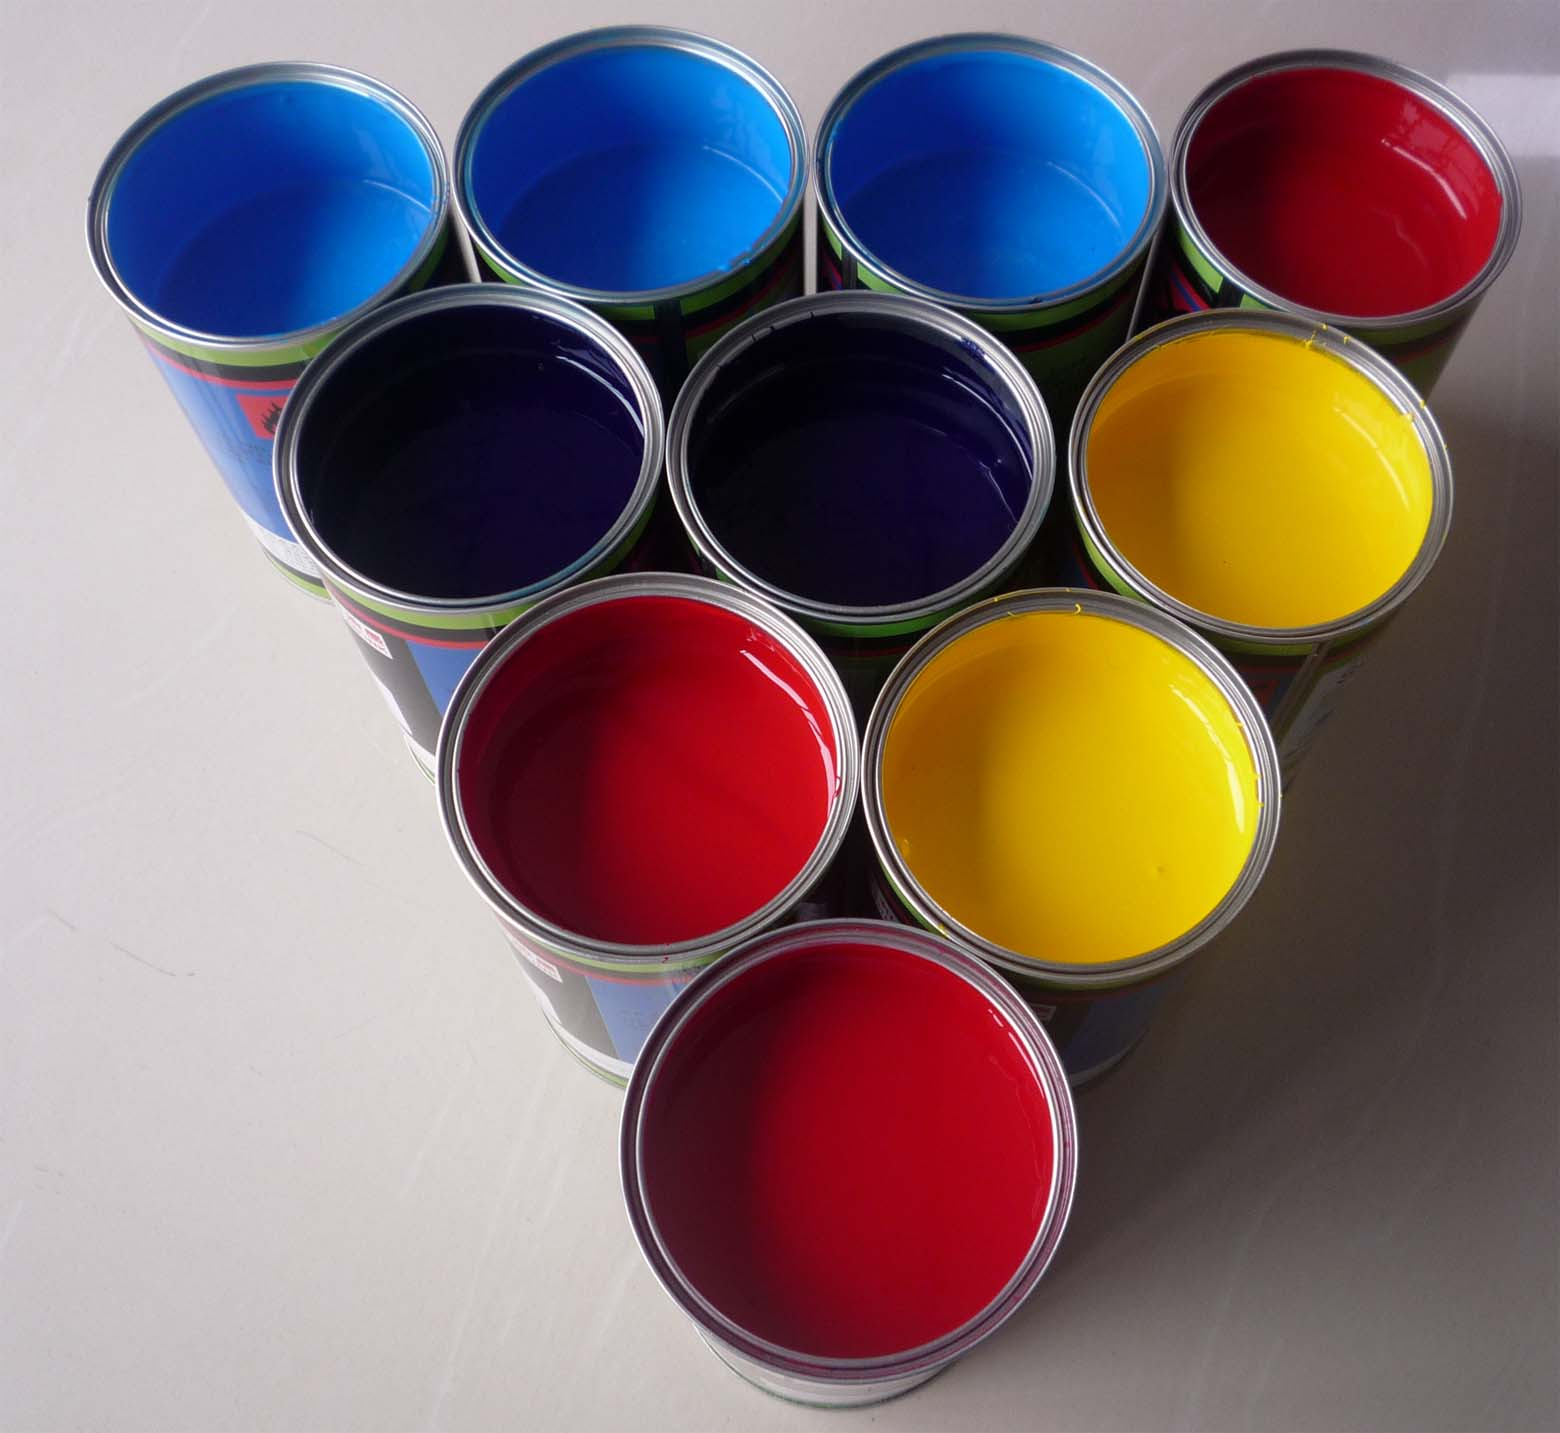 USD 24.64] Screen screen printing ink printing ink water-based ink  oil-based ink glass spray-painted cloth wall and so on - Wholesale from  China online shopping | Buy asian products online from the